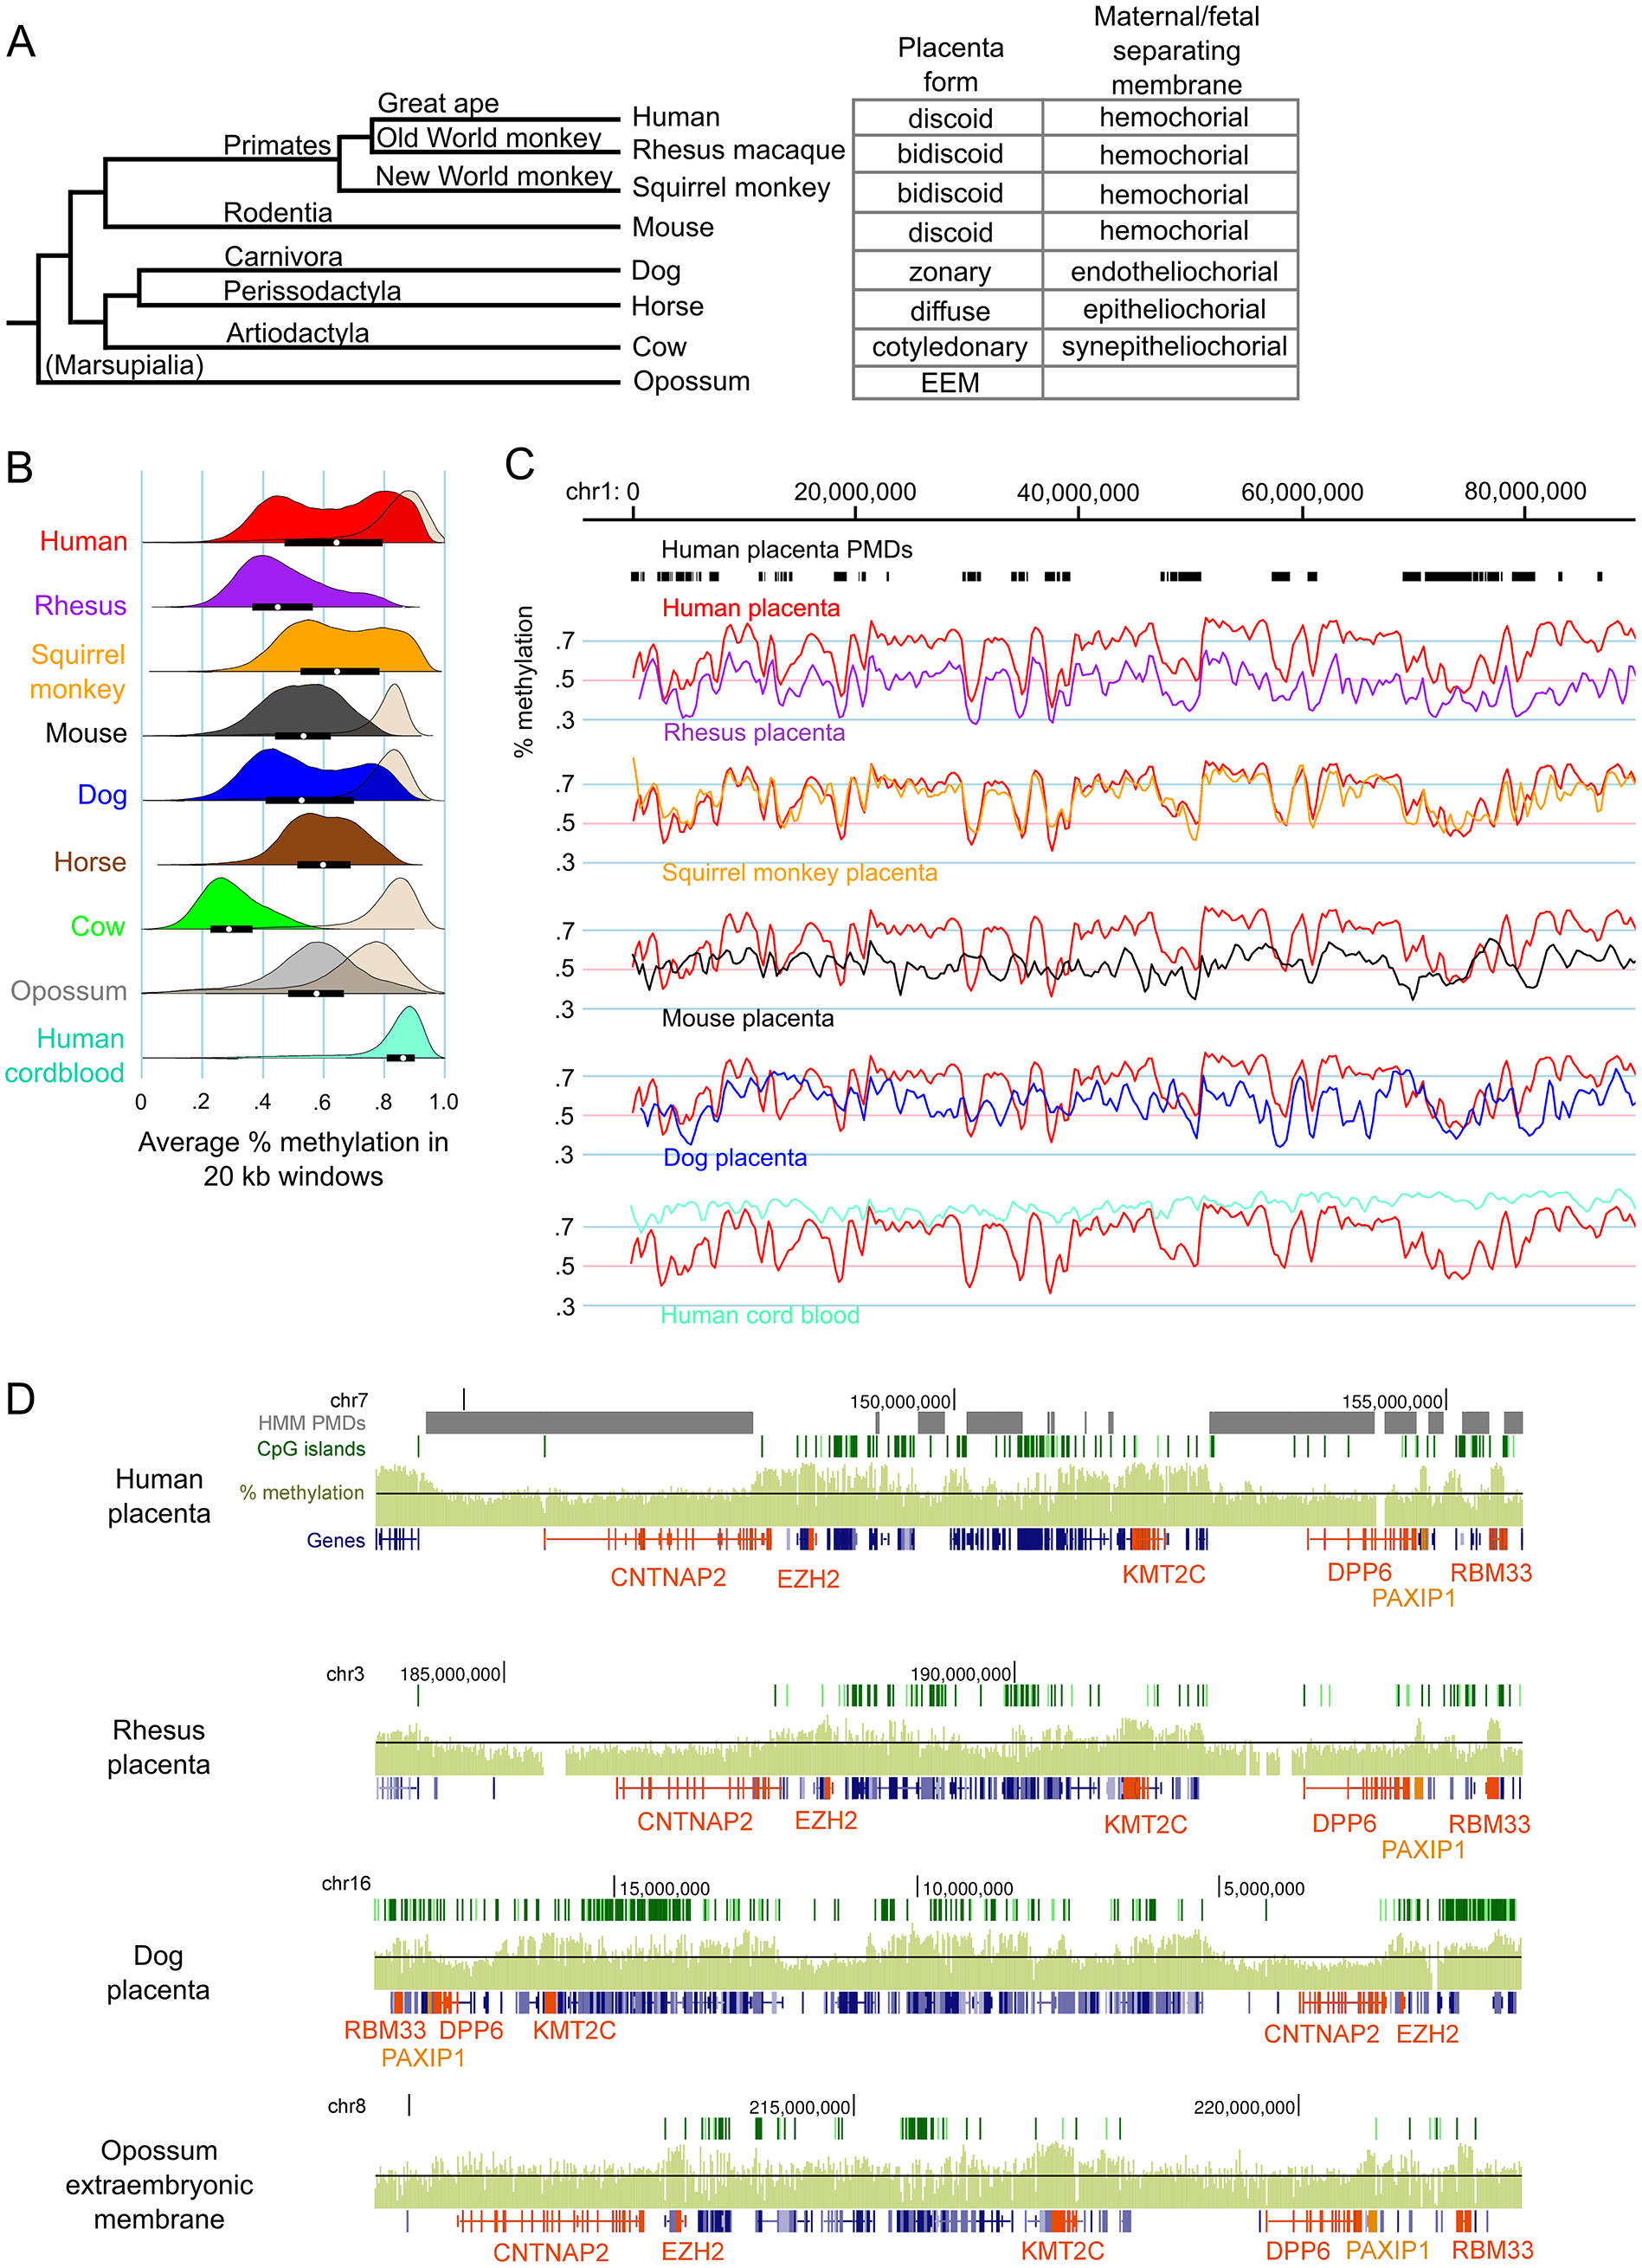 Genome-wide methylation patterns in mammalian placentas show both large-scale divergence and gene-specific similarities.